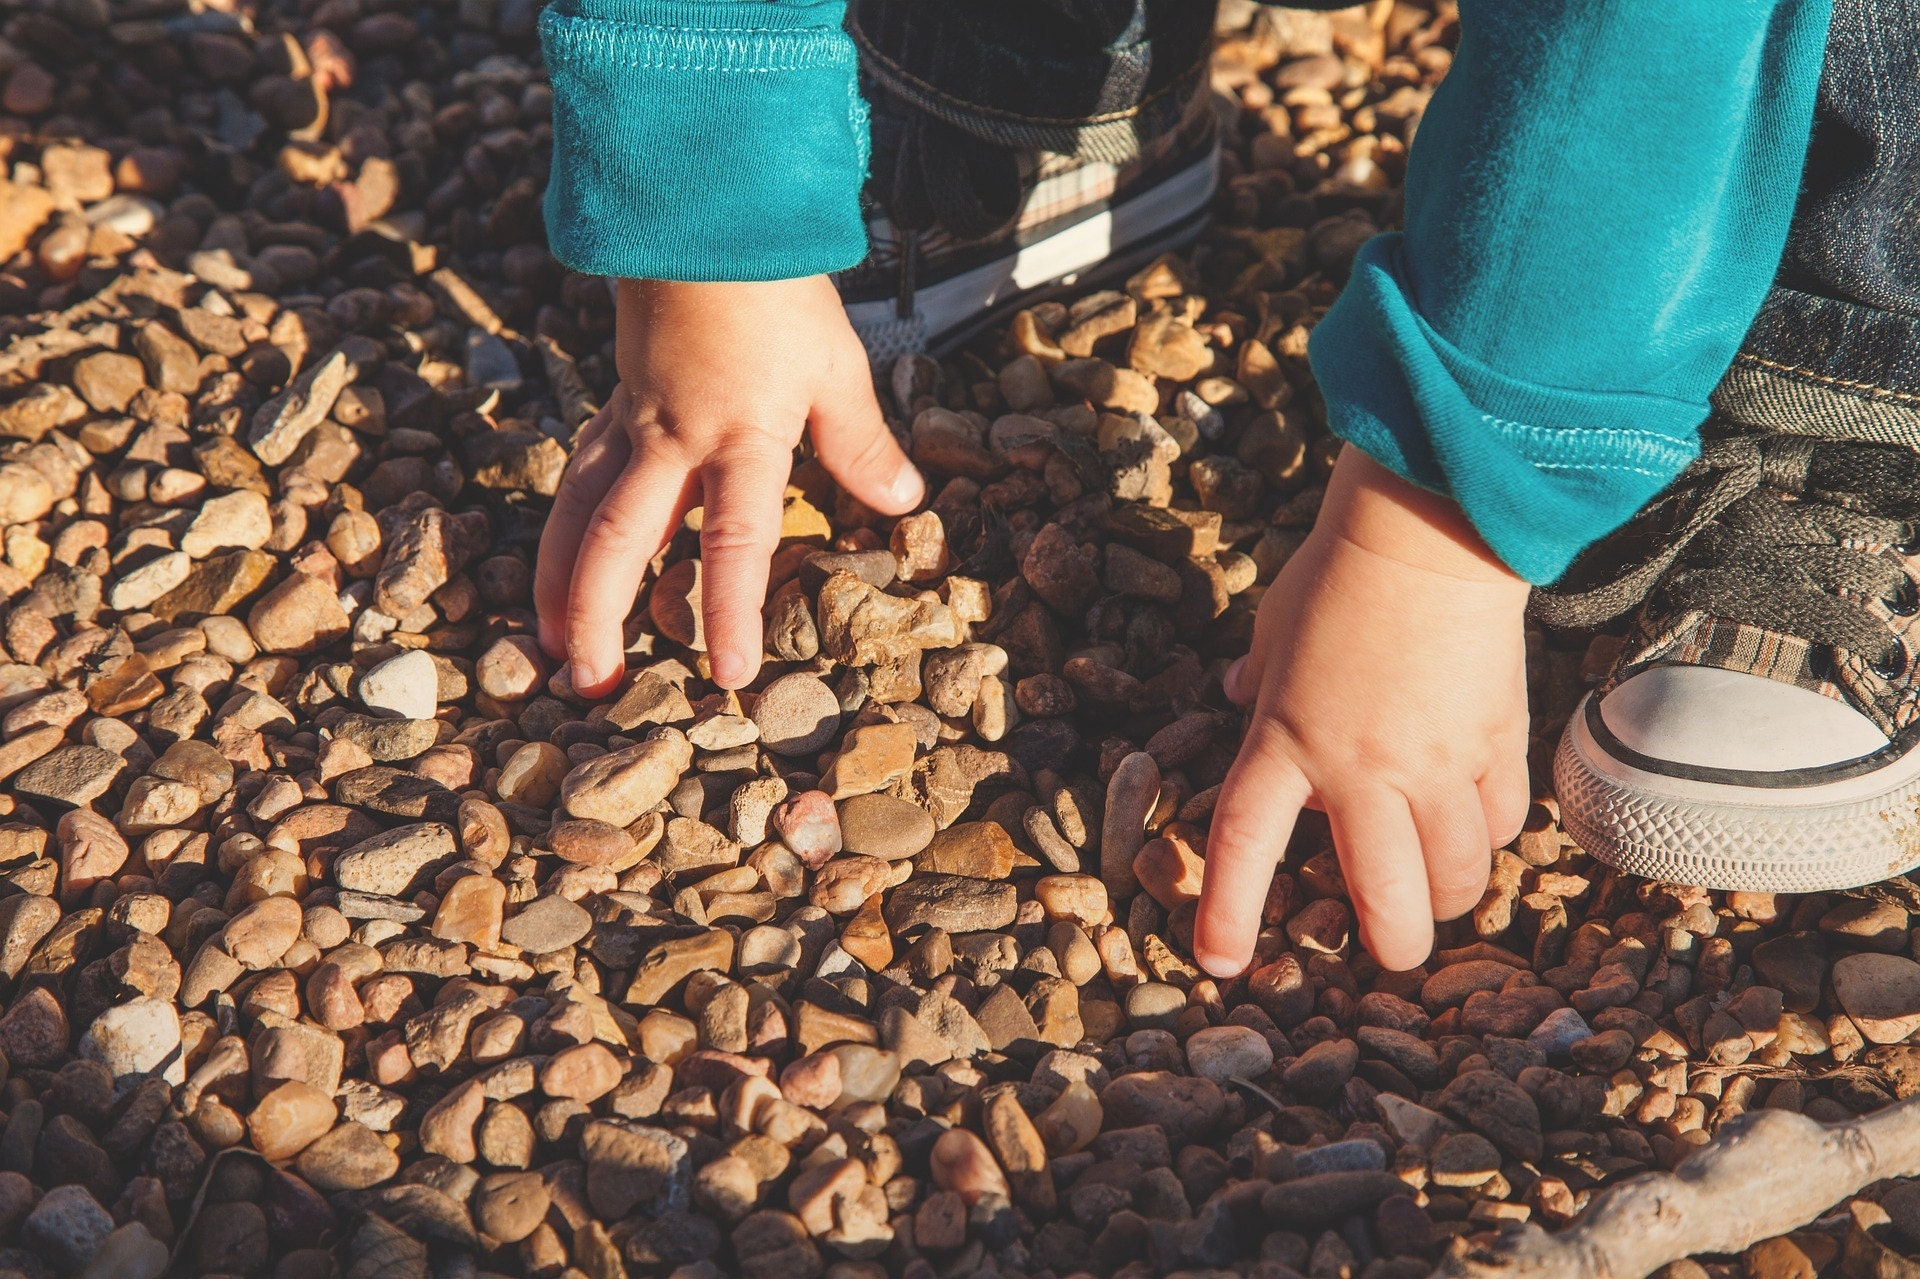 Outdoor play, pebbles, child, explore, sensory